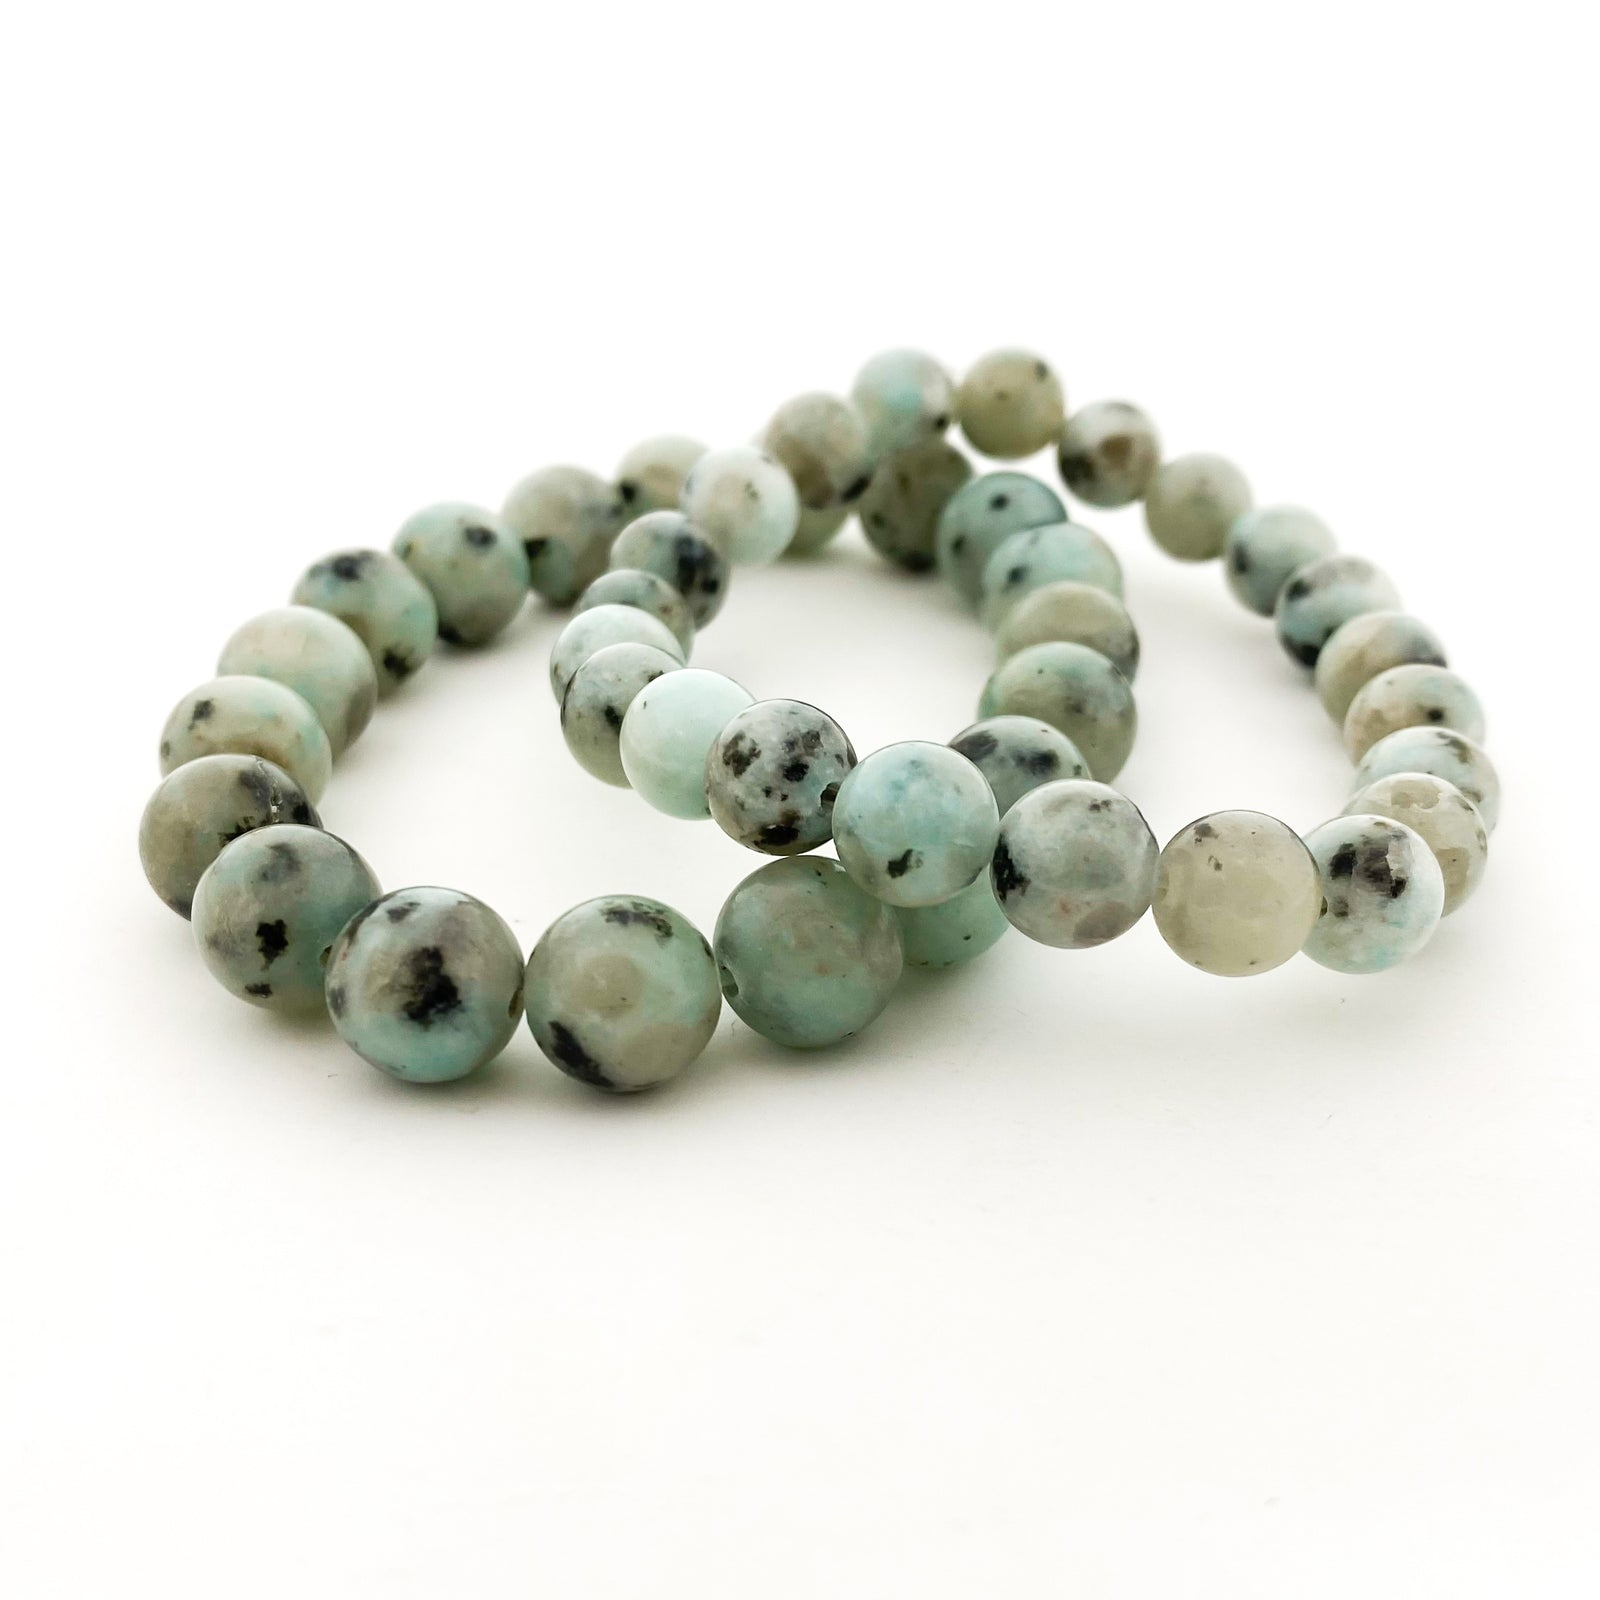 MINT DALMATIAN AGATE BRACELETS | SIZE OPTIONS